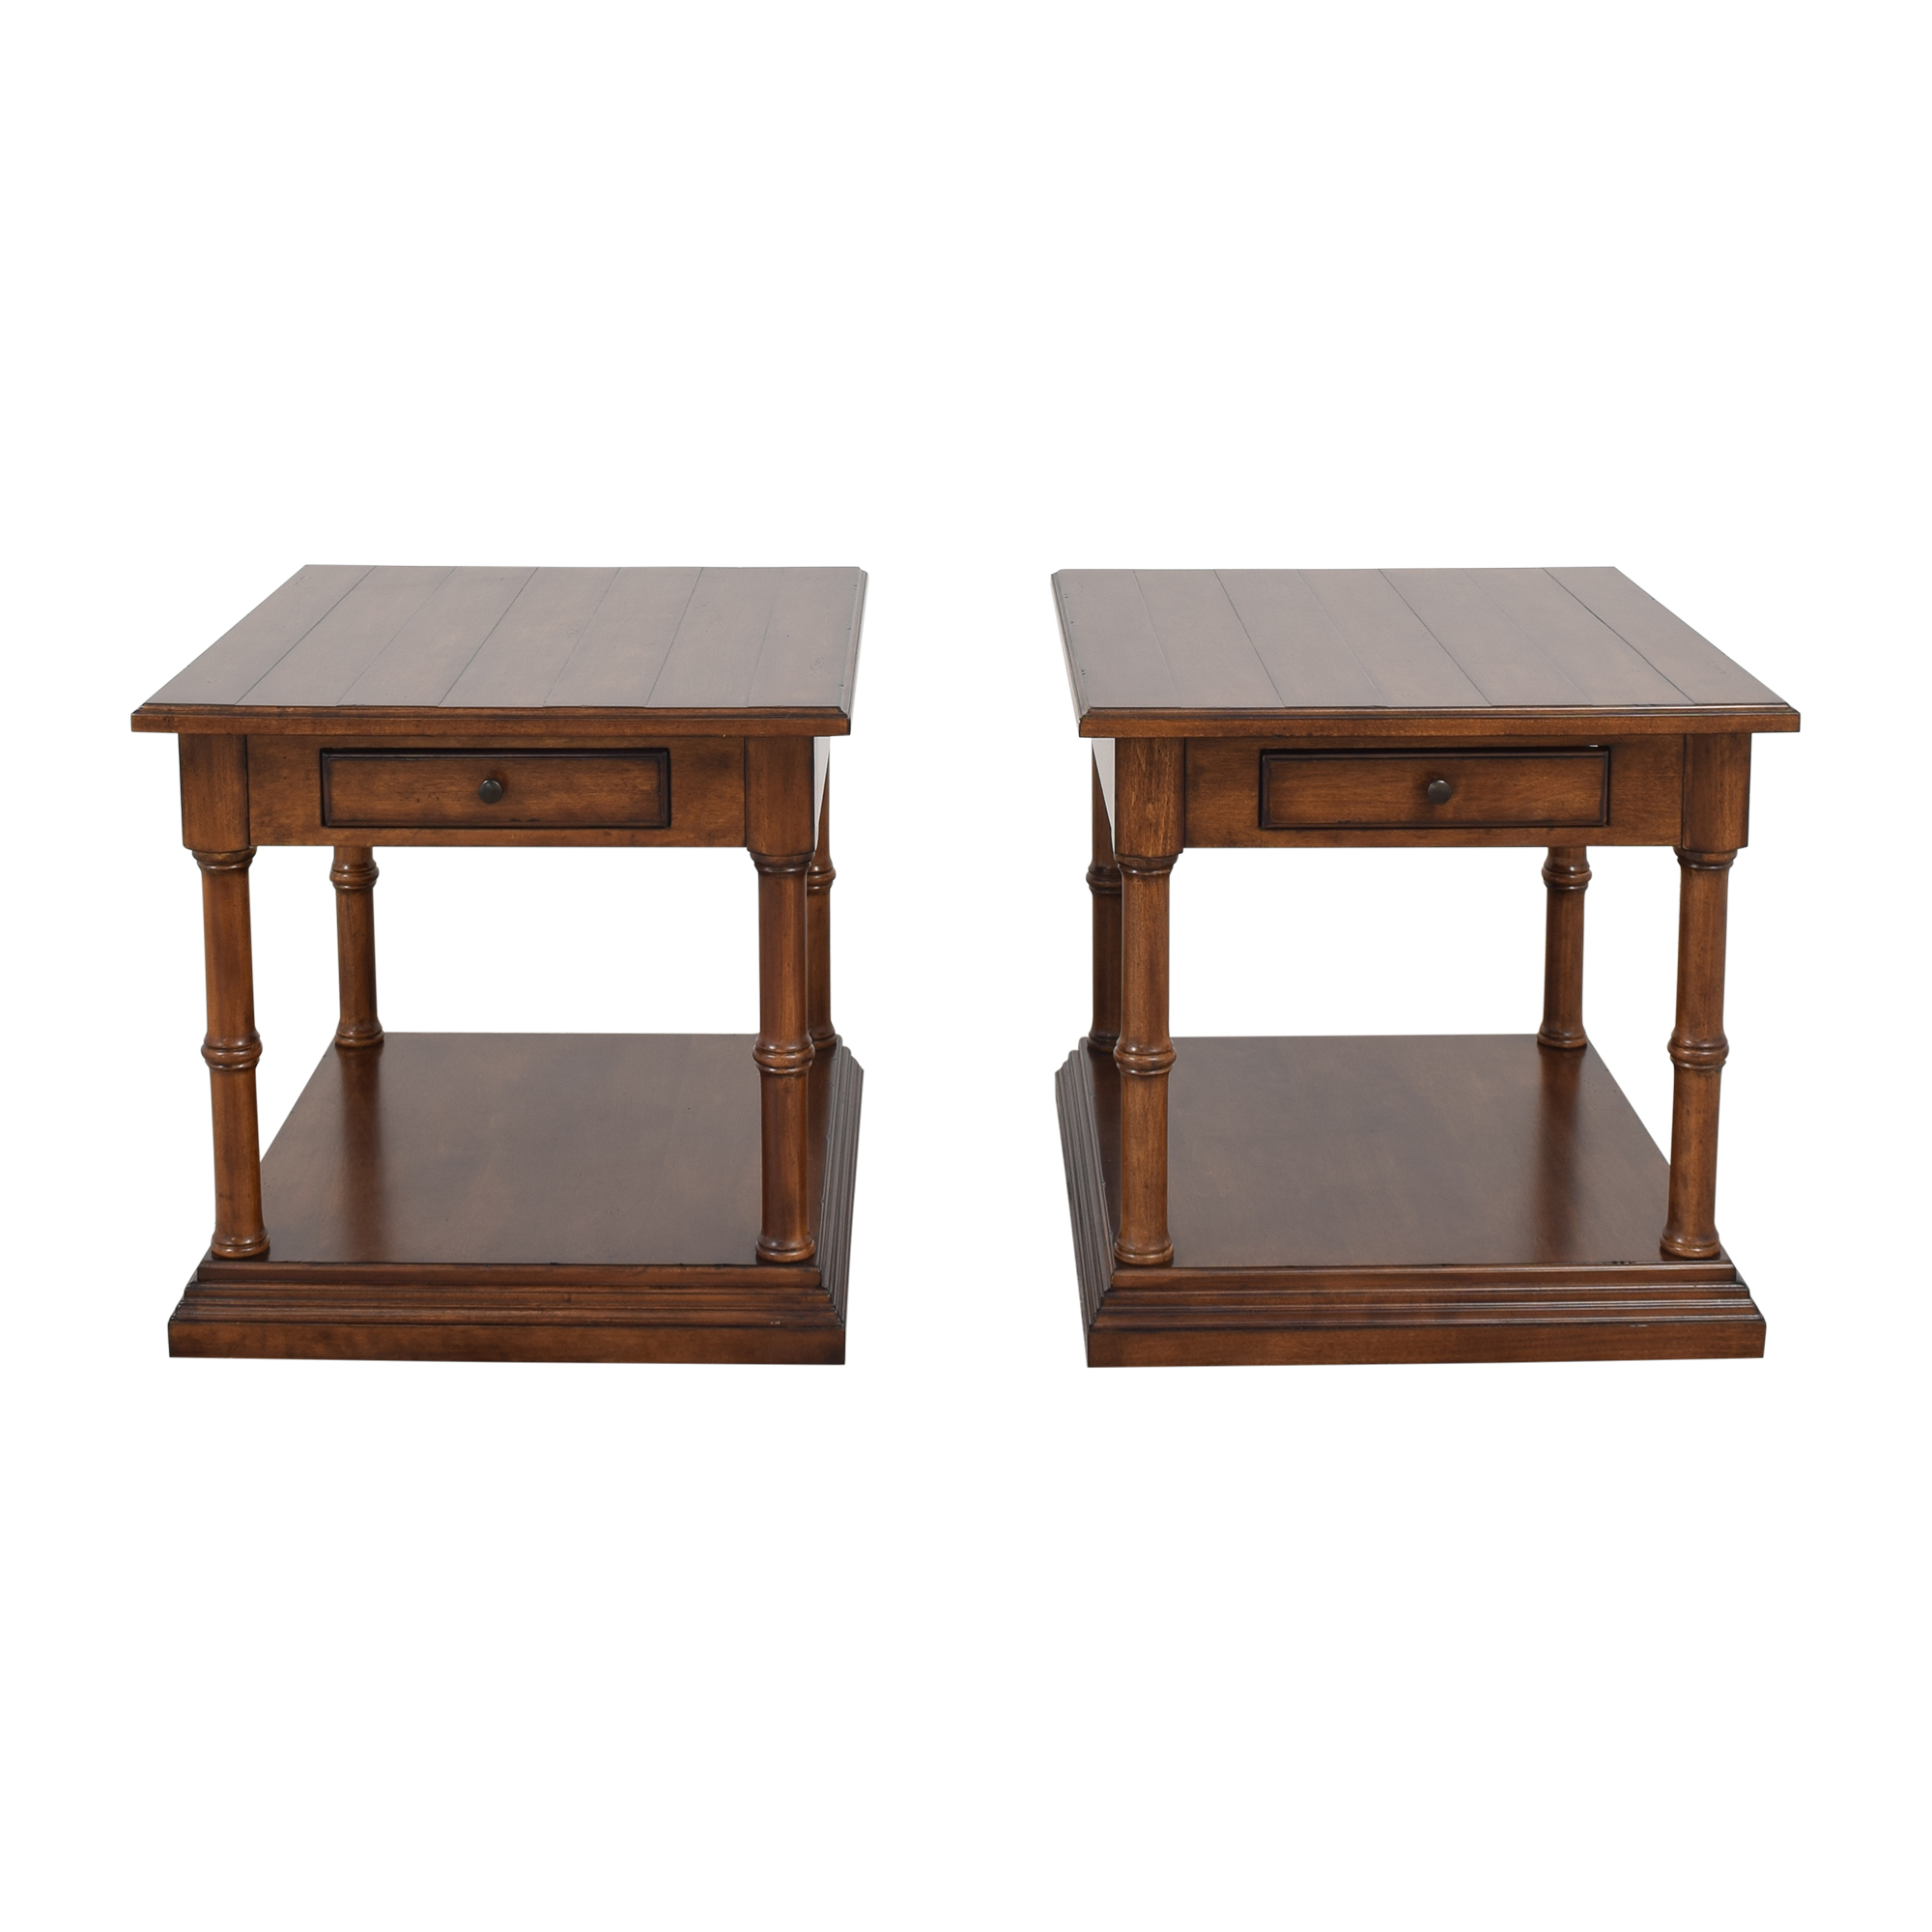 buy Thomasville Two Tier End Tables Thomasville